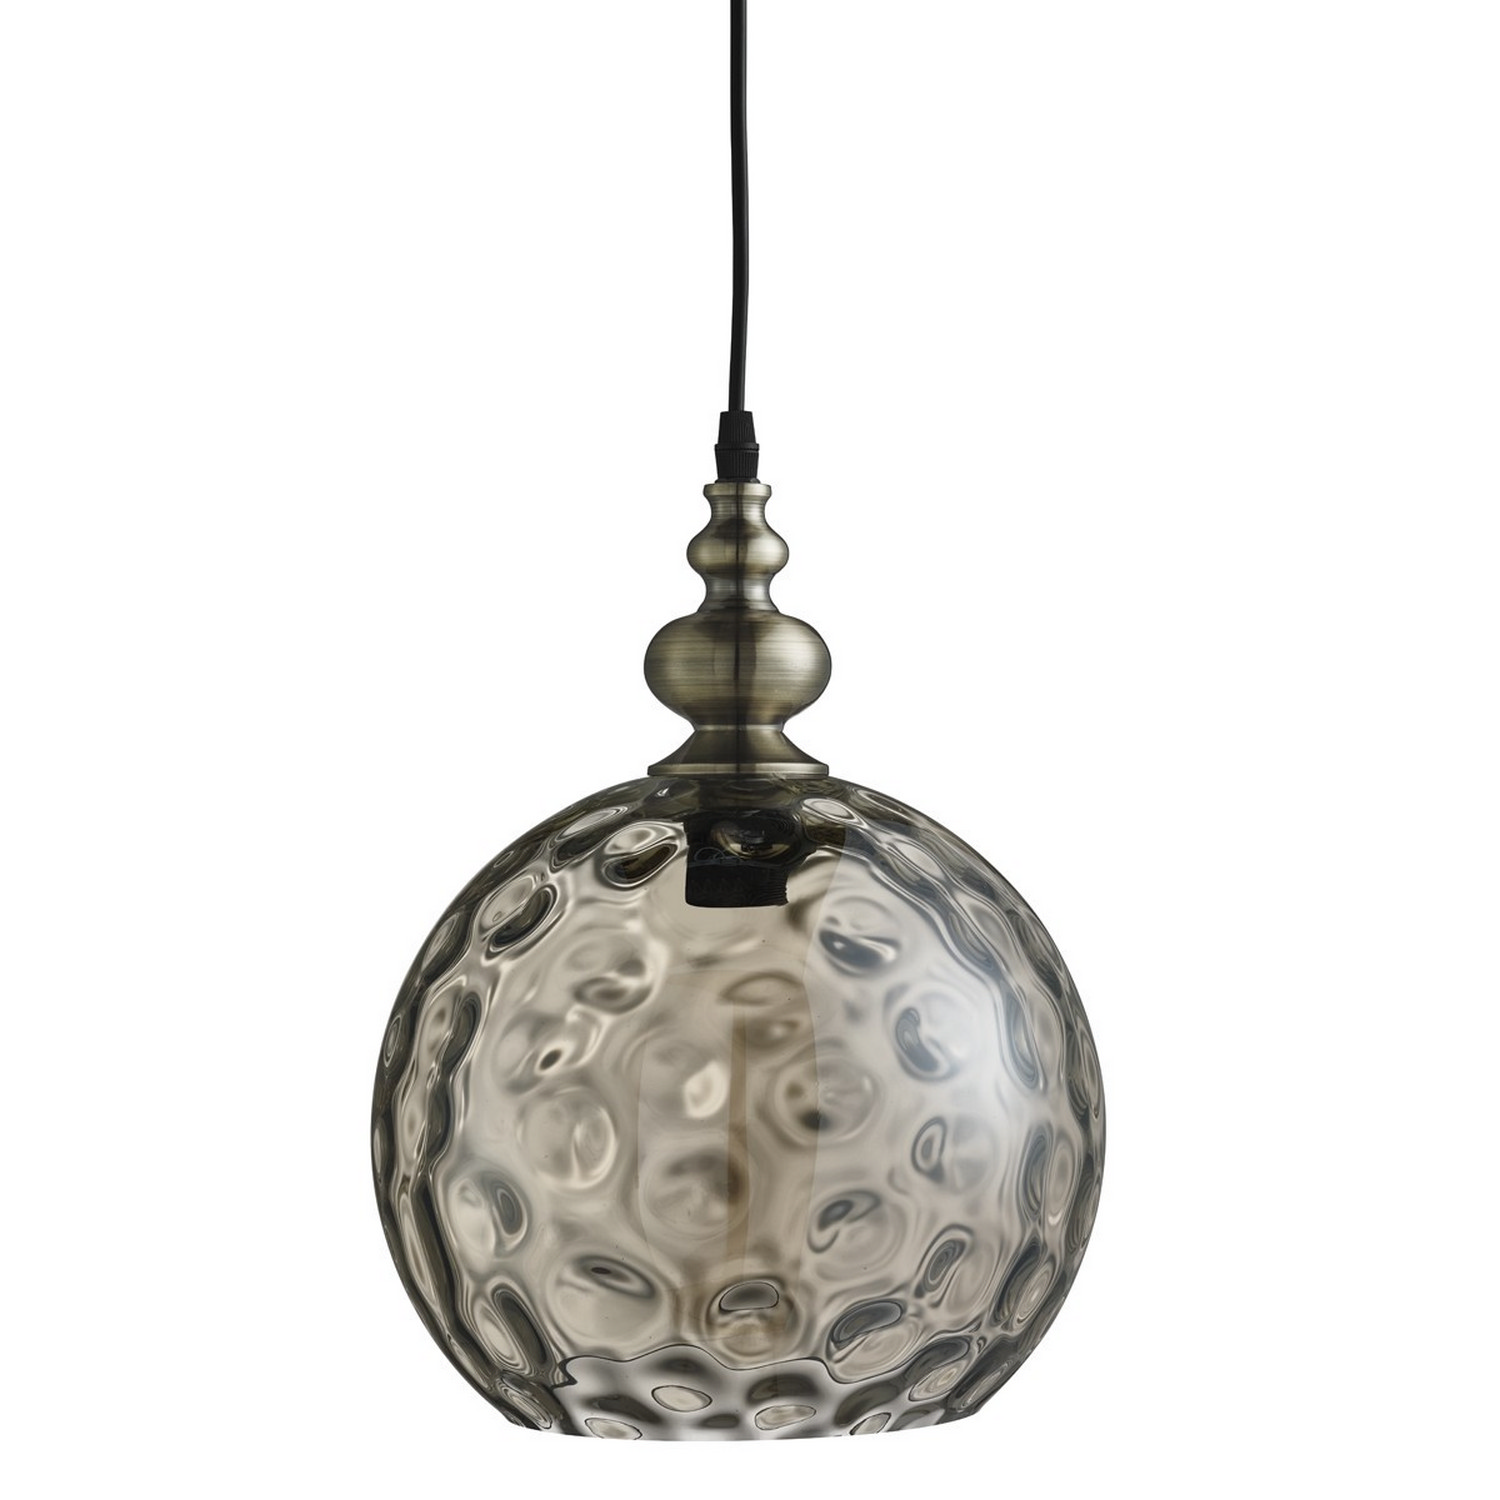 Picture of: Indiana Antique Brass Globe Ceiling Pendant Light Fitting Dimpled Glass Shade 5053423058566 Ebay